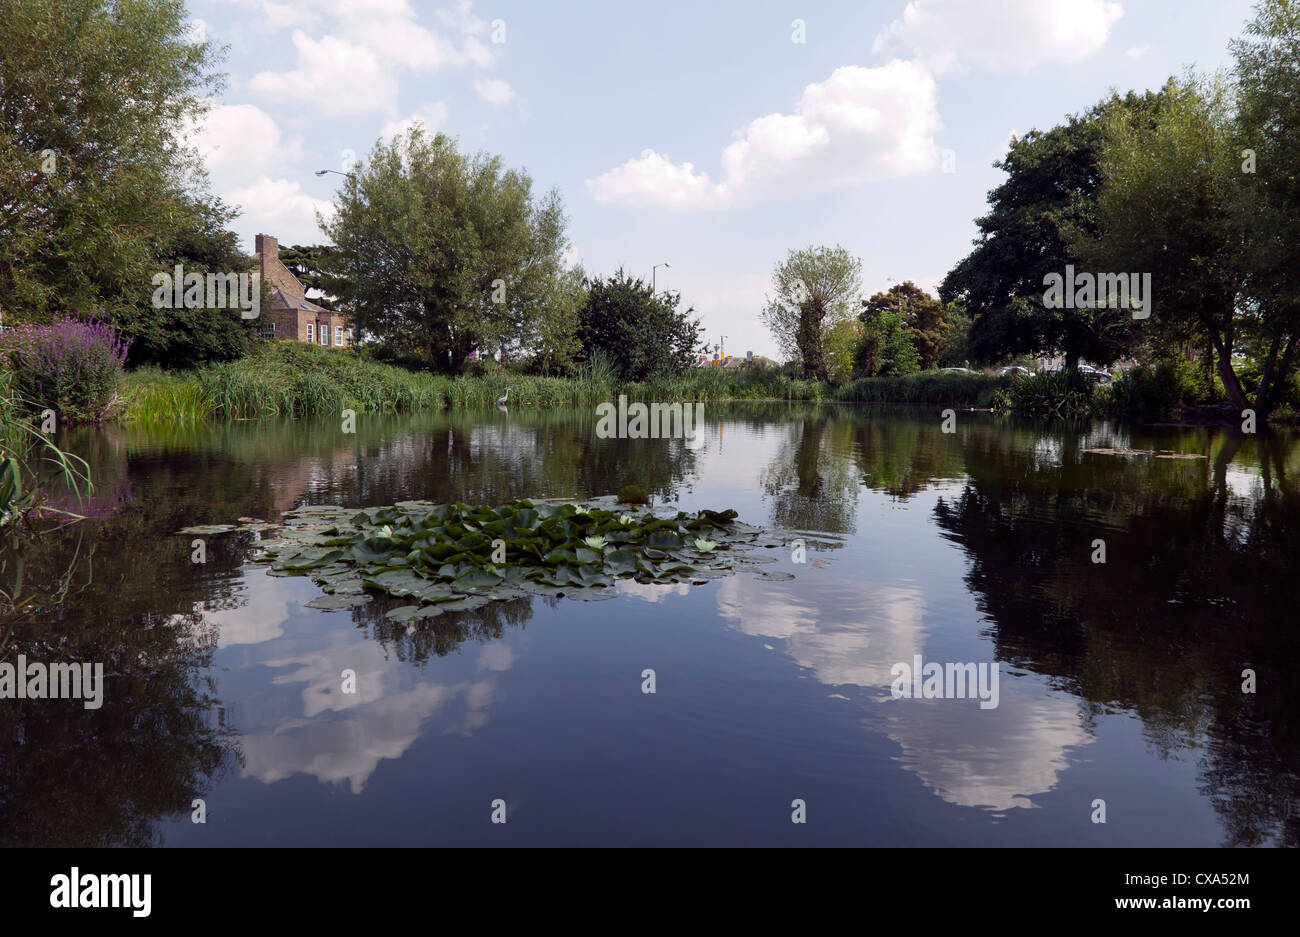 Wide-angle view of the Hare and Billet Pond, Blackheath, Lewisham. - Stock Image